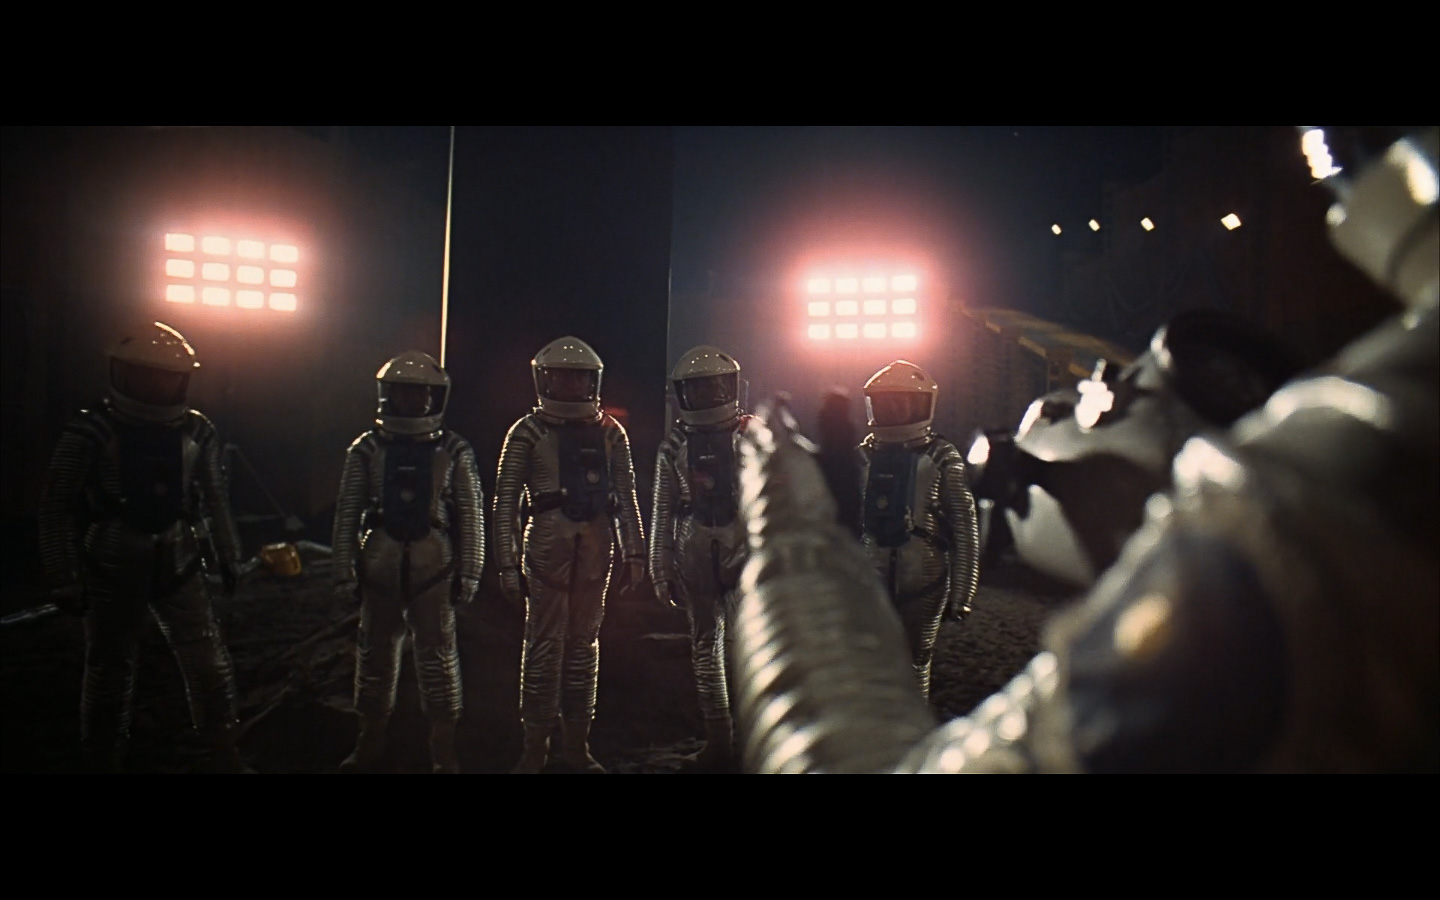 scene on the moon obelisk - space odyssey-22